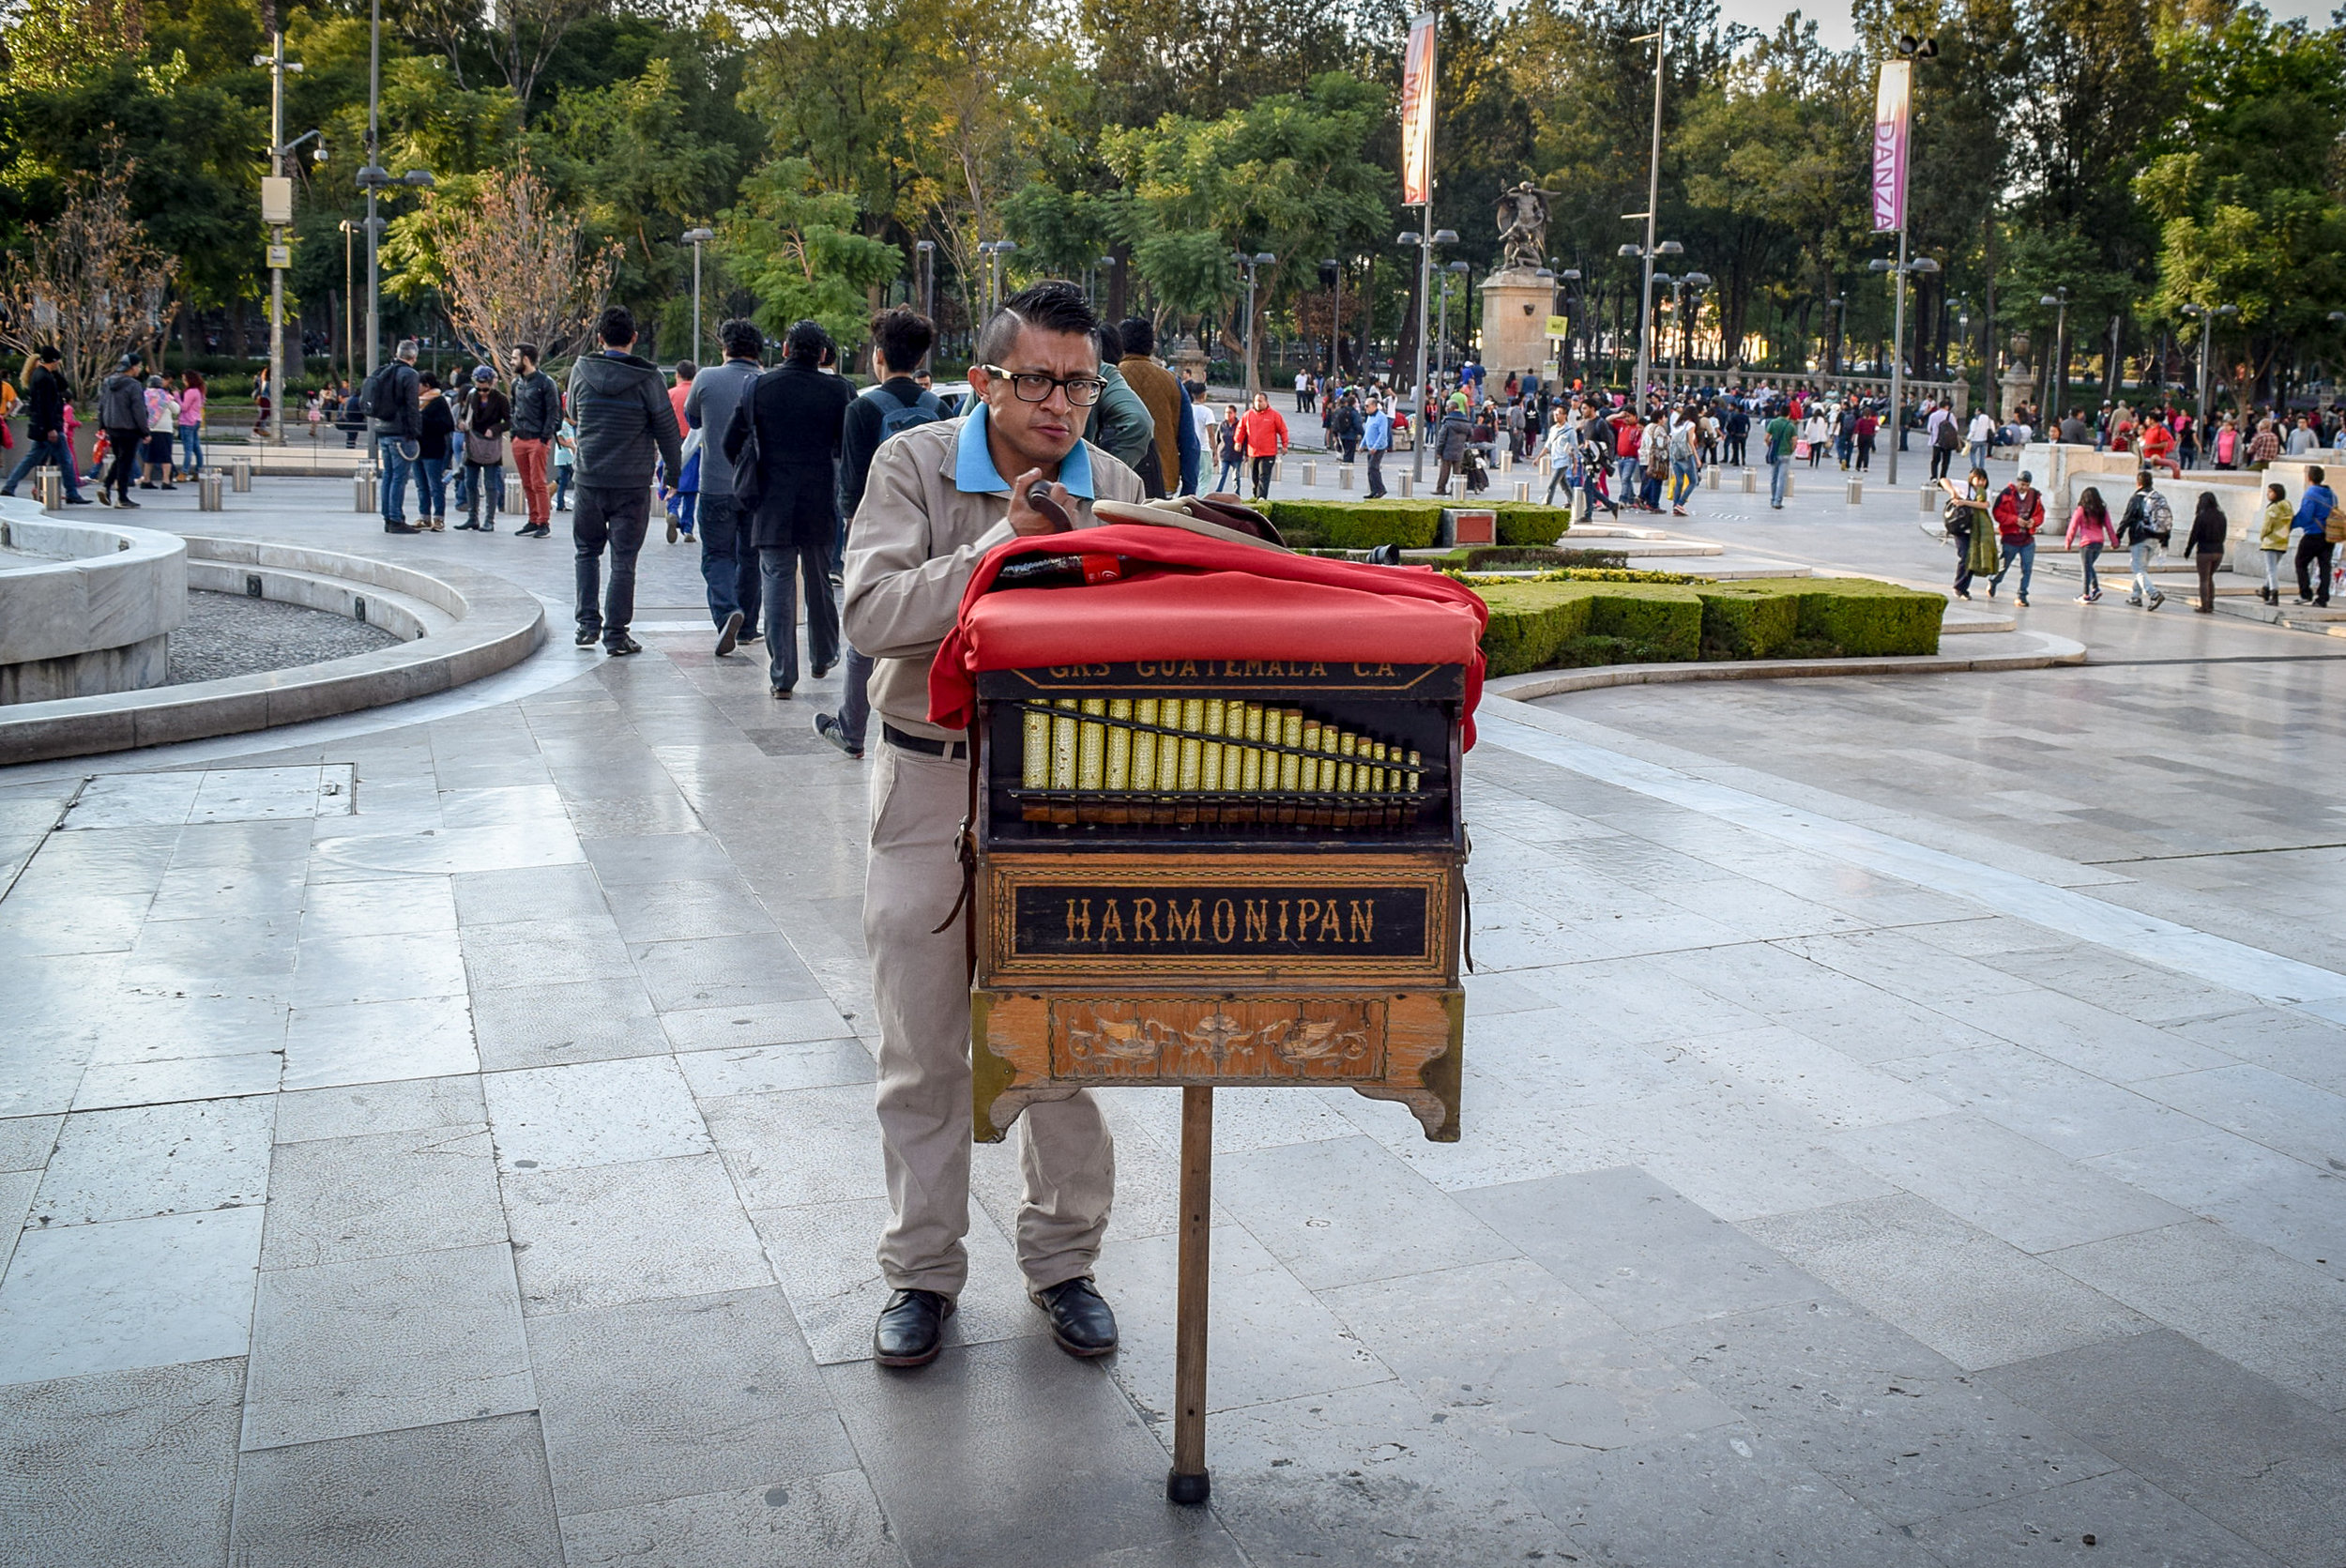 Harmonipan player in Mexico City